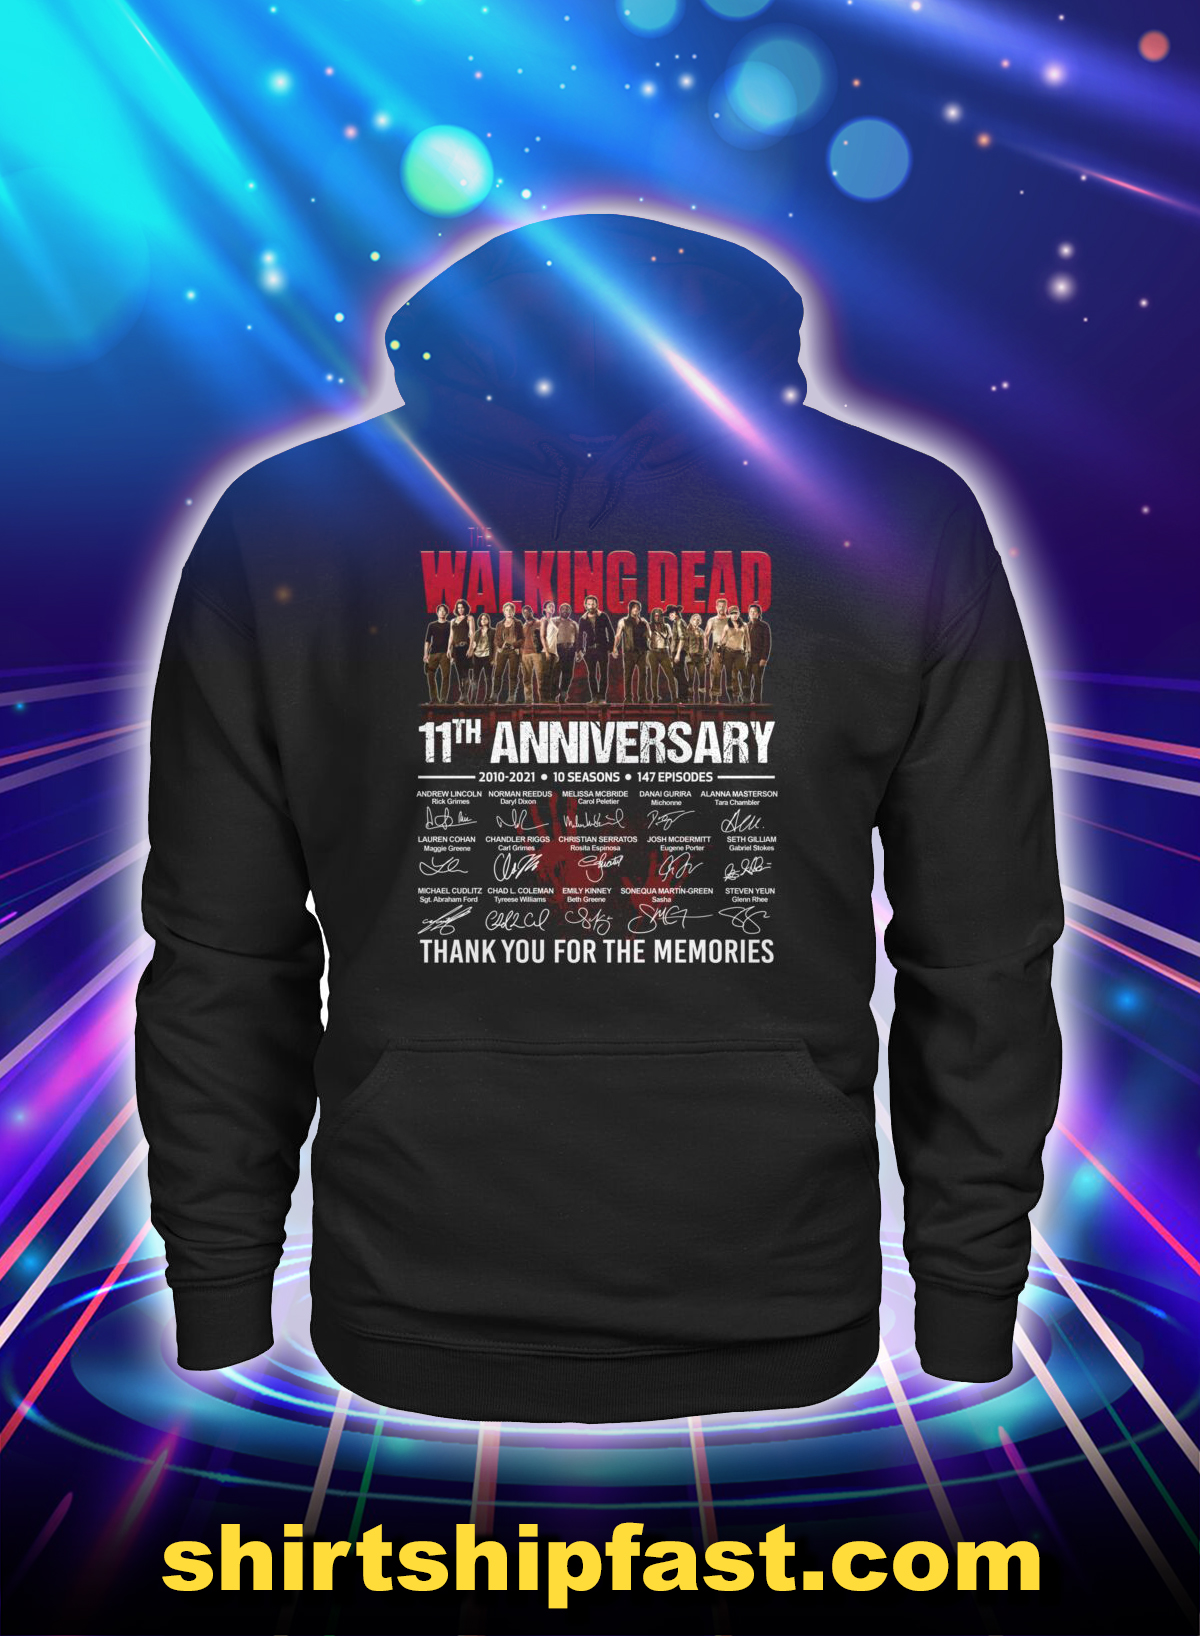 The walking dead 11th anniversary thank you for the memories hoodie